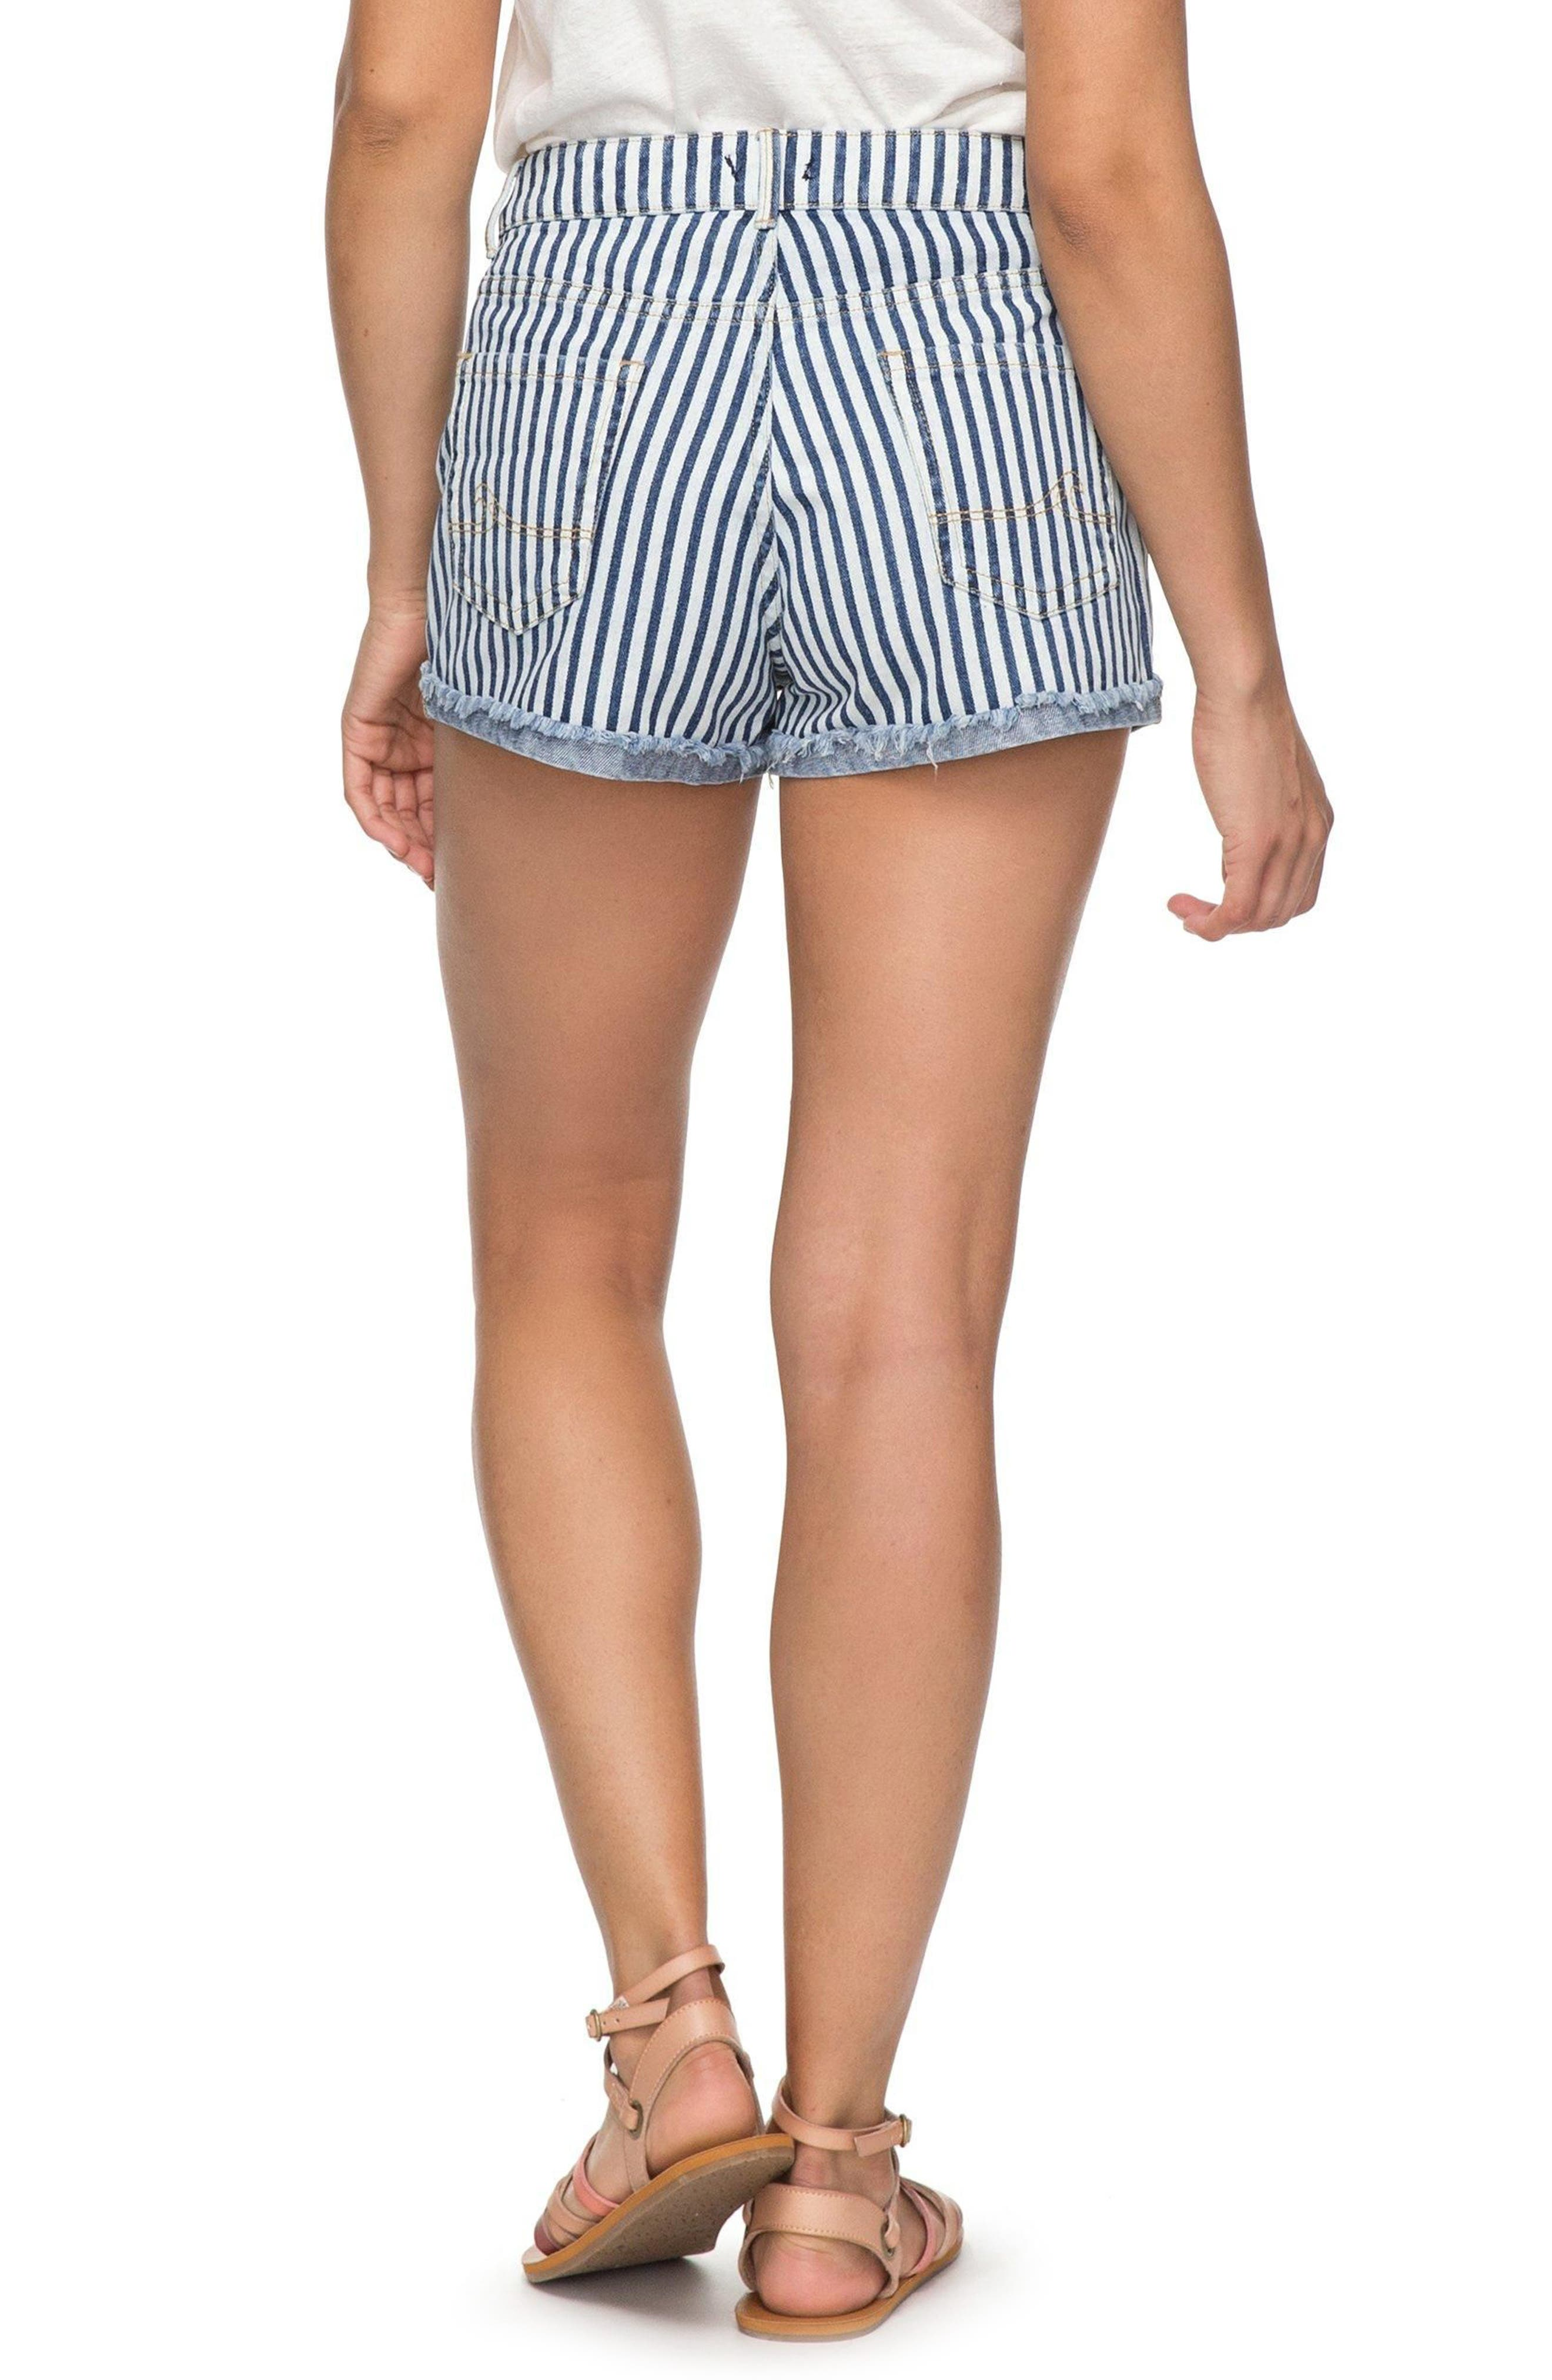 Holbrook Stripe Cotton Shorts,                             Alternate thumbnail 2, color,                             Medium Blue La Vague Stripe